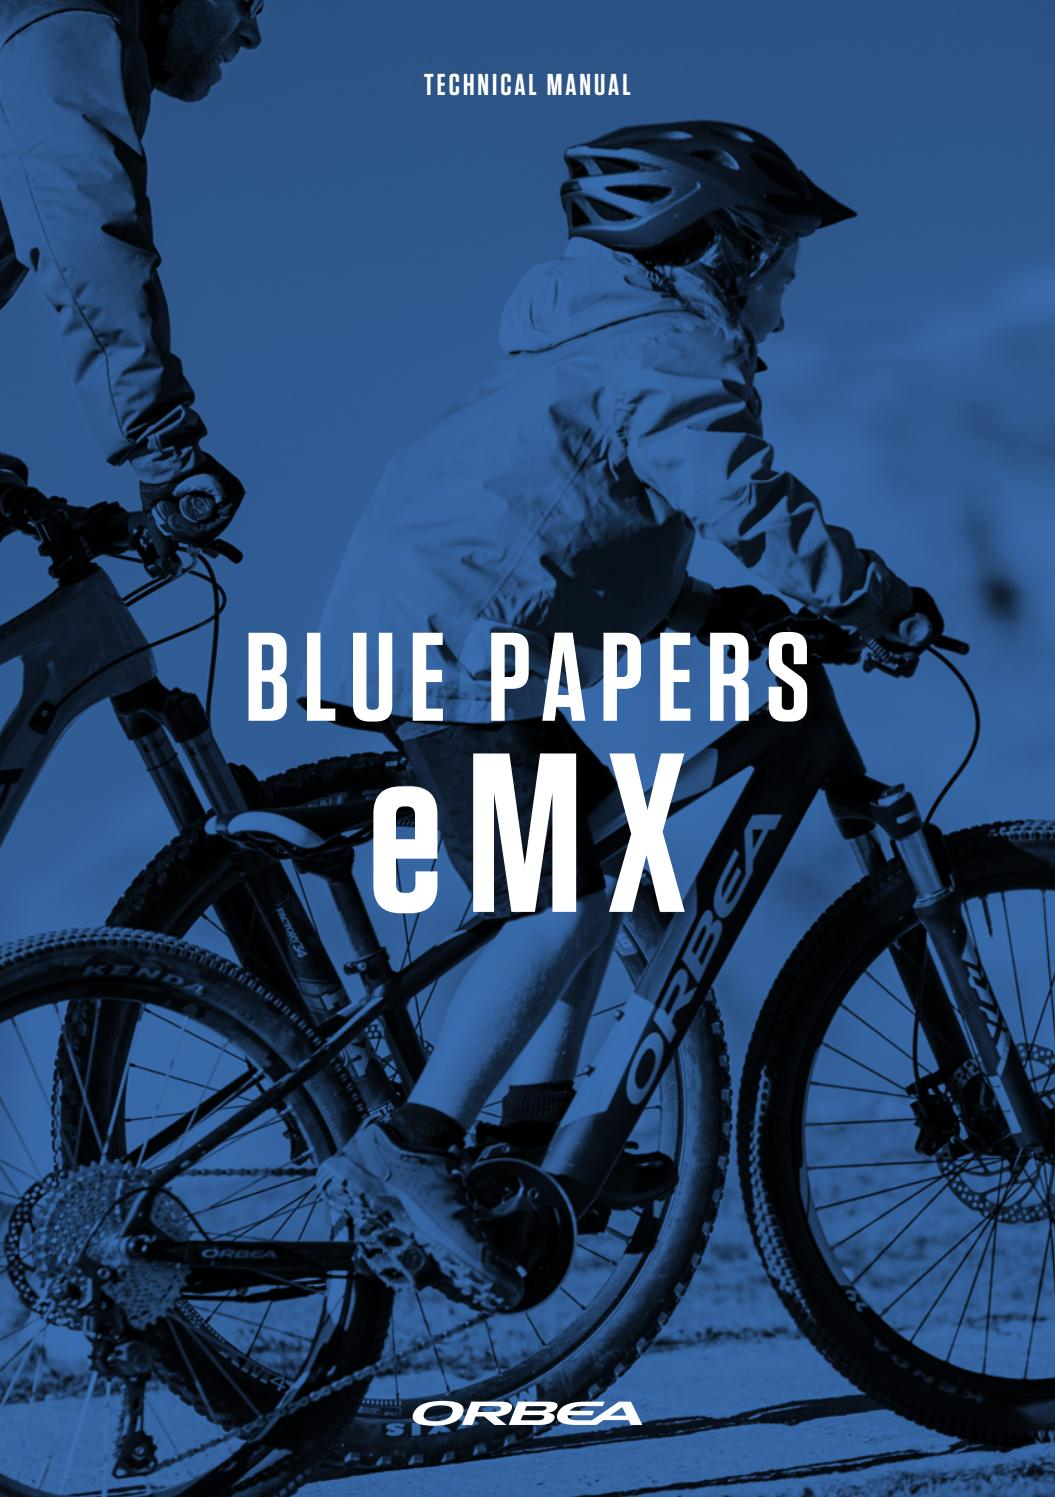 blue-paper-eMX-2019-03/06/2019 by Orbea Bicycles - issuu